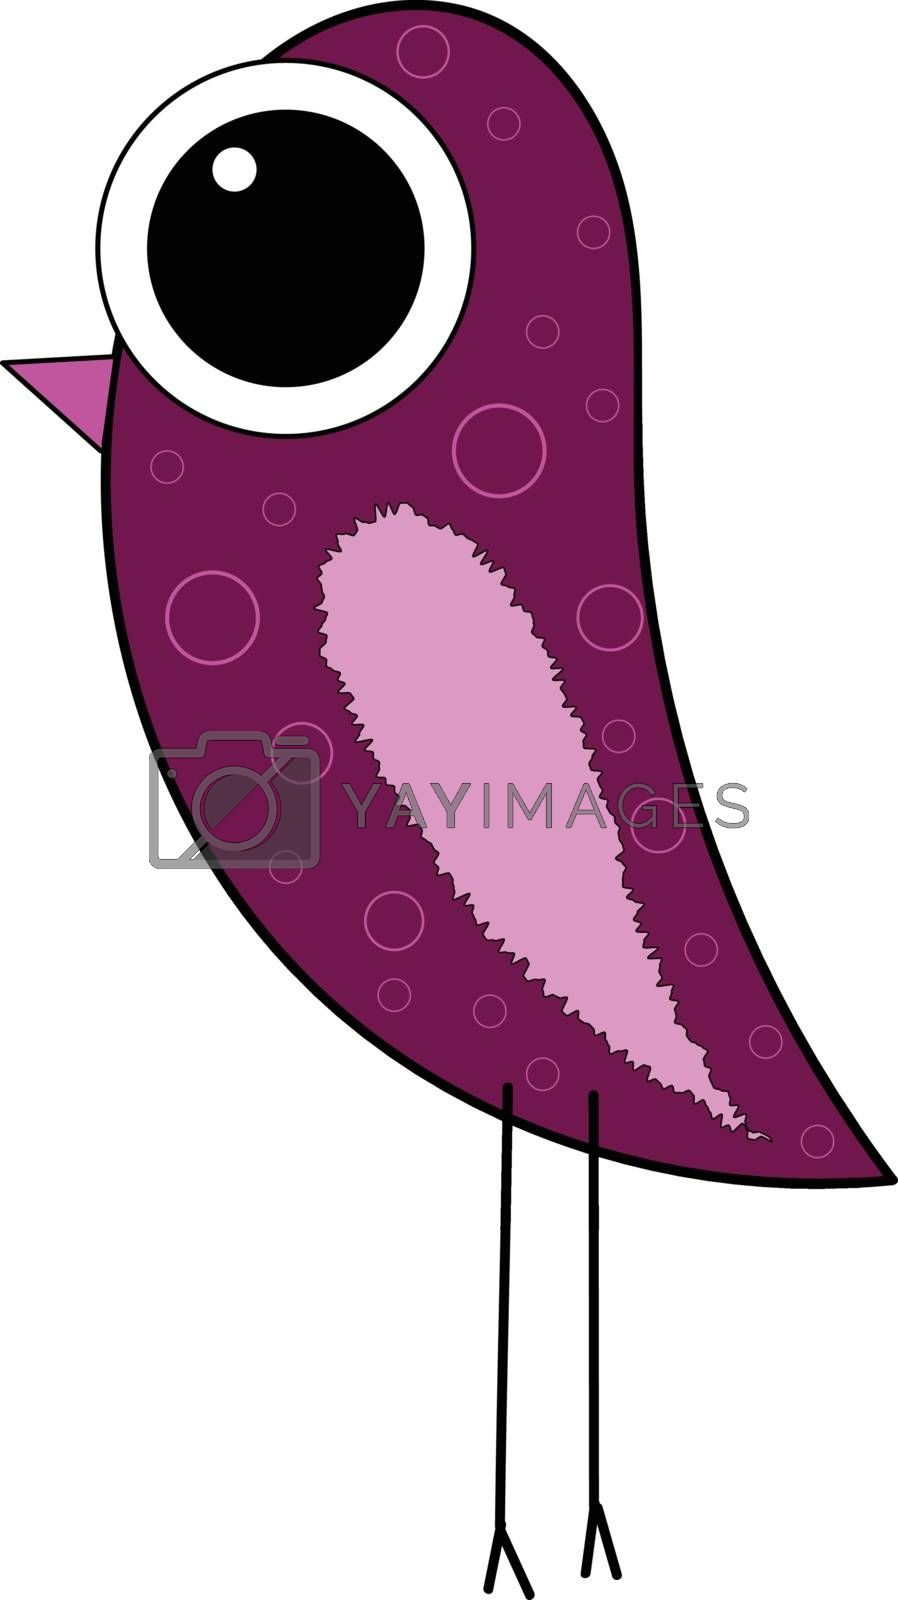 Royalty free image of Cartoon purple bird set on isolated white background viewed from by Morphart